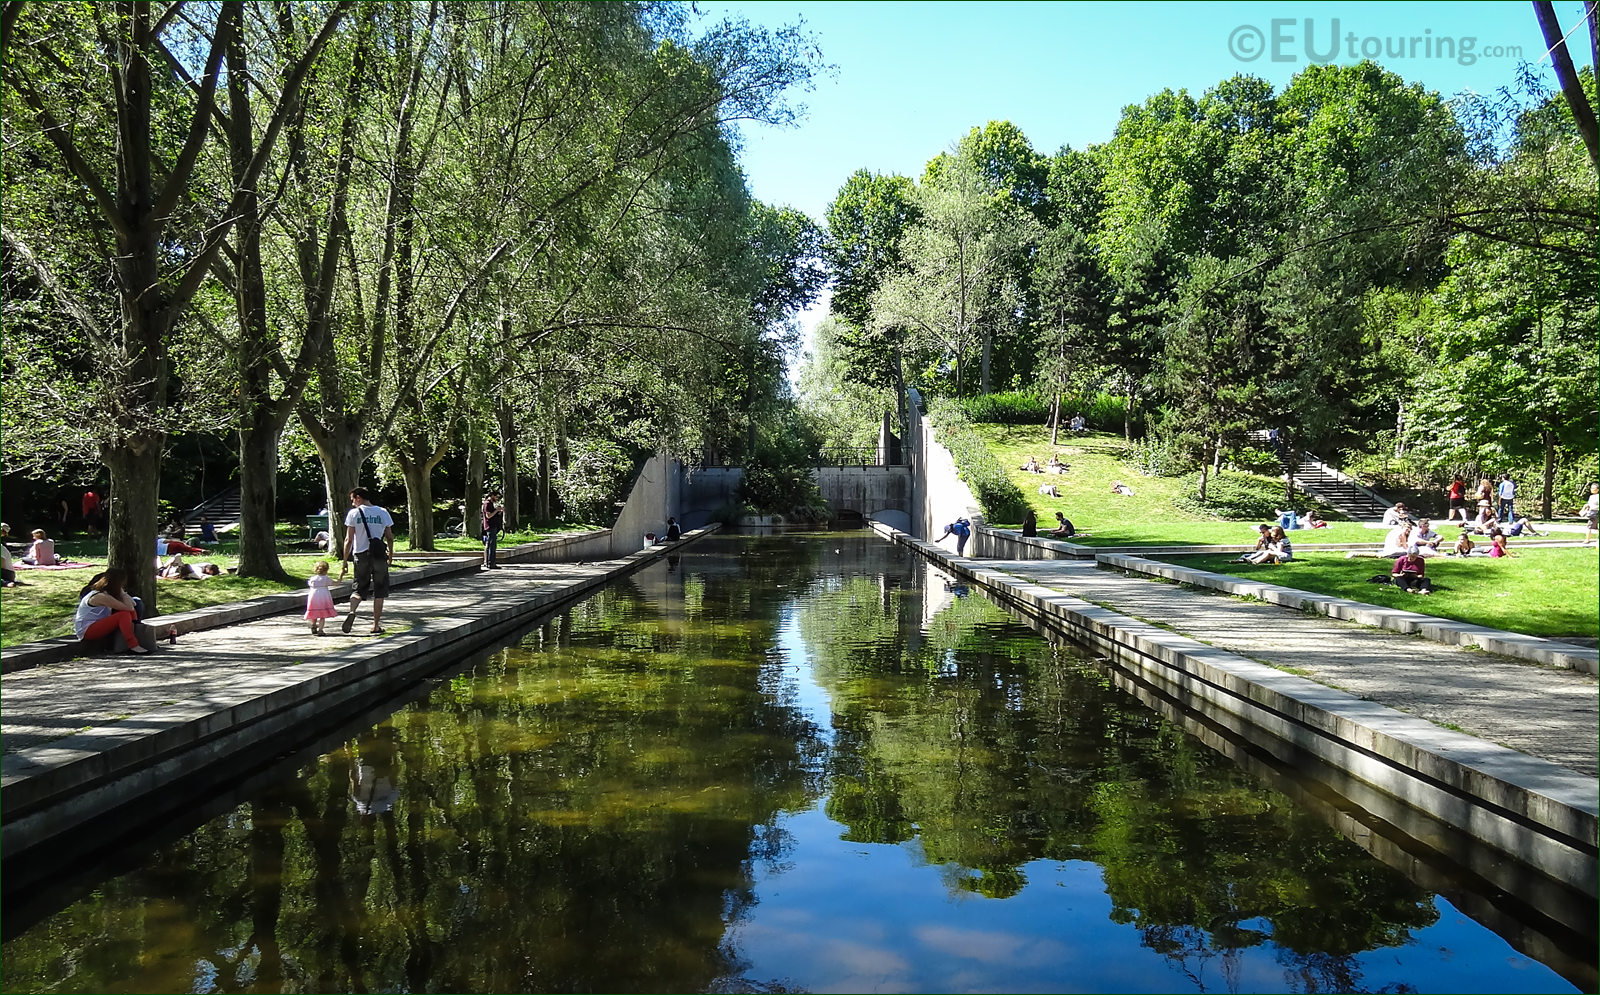 hd photos of the jardin yitzhak rabin gardens in parc de